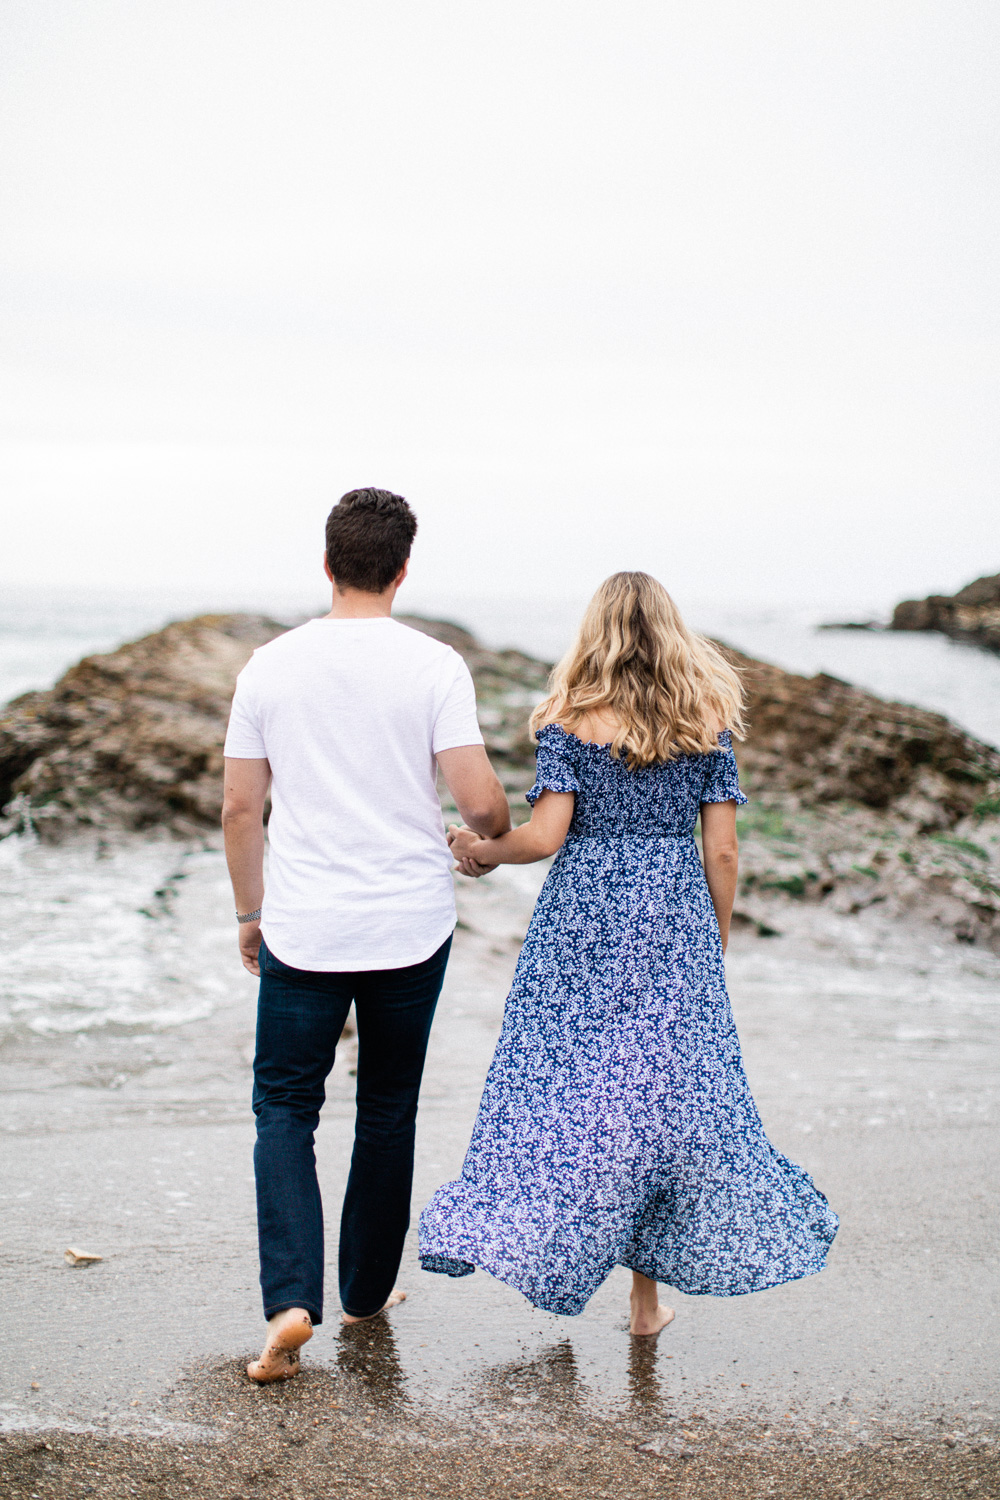 Ashley-Rae-Studio-San-Luis-Obispo-Engagement-Session-Santa-Barbara-Wedding-Photographer-146.jpg